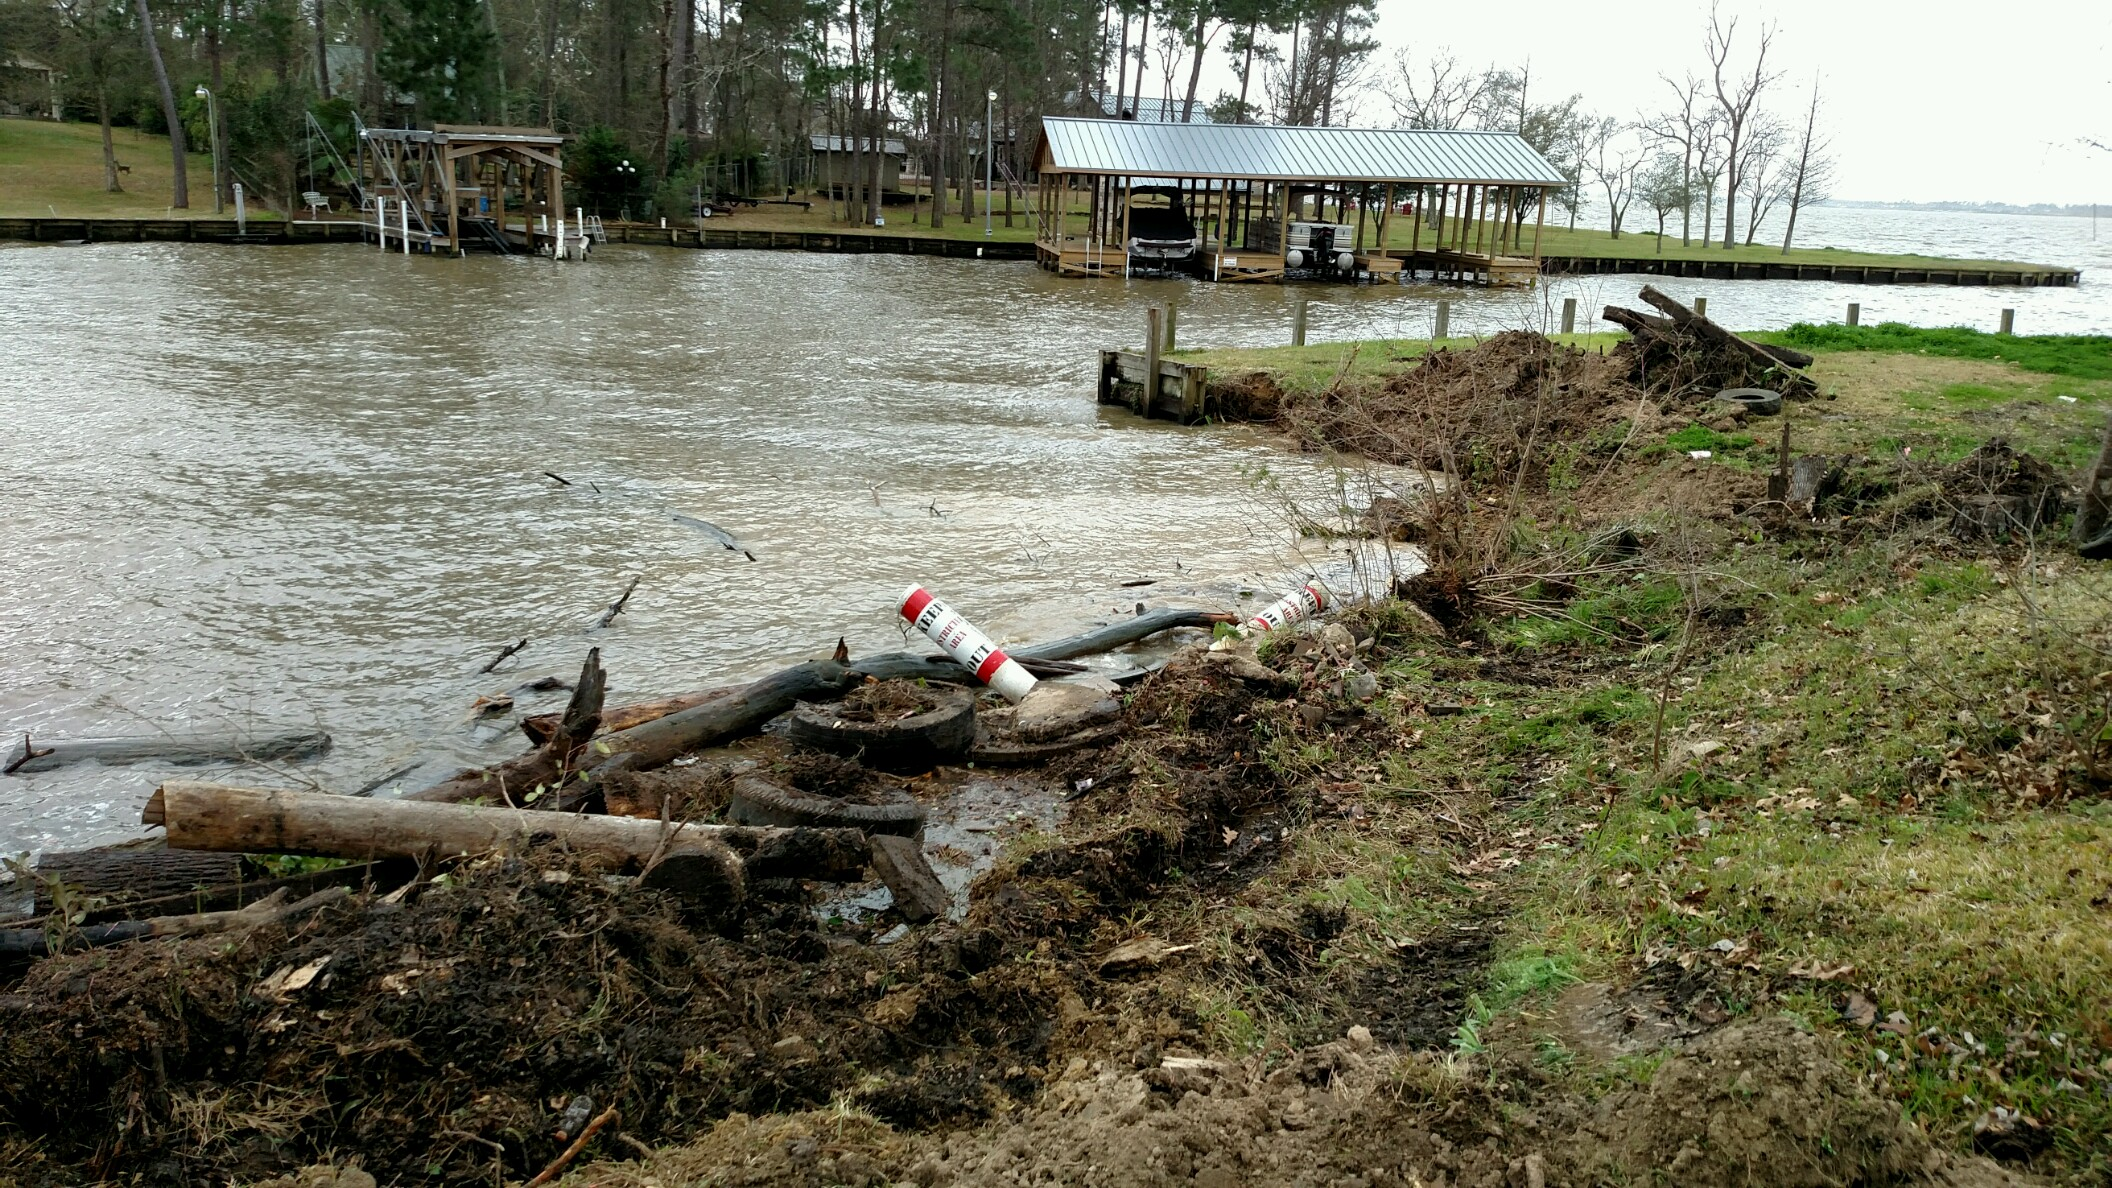 Debris on bank before bulkhead construction in crosby on lake houston